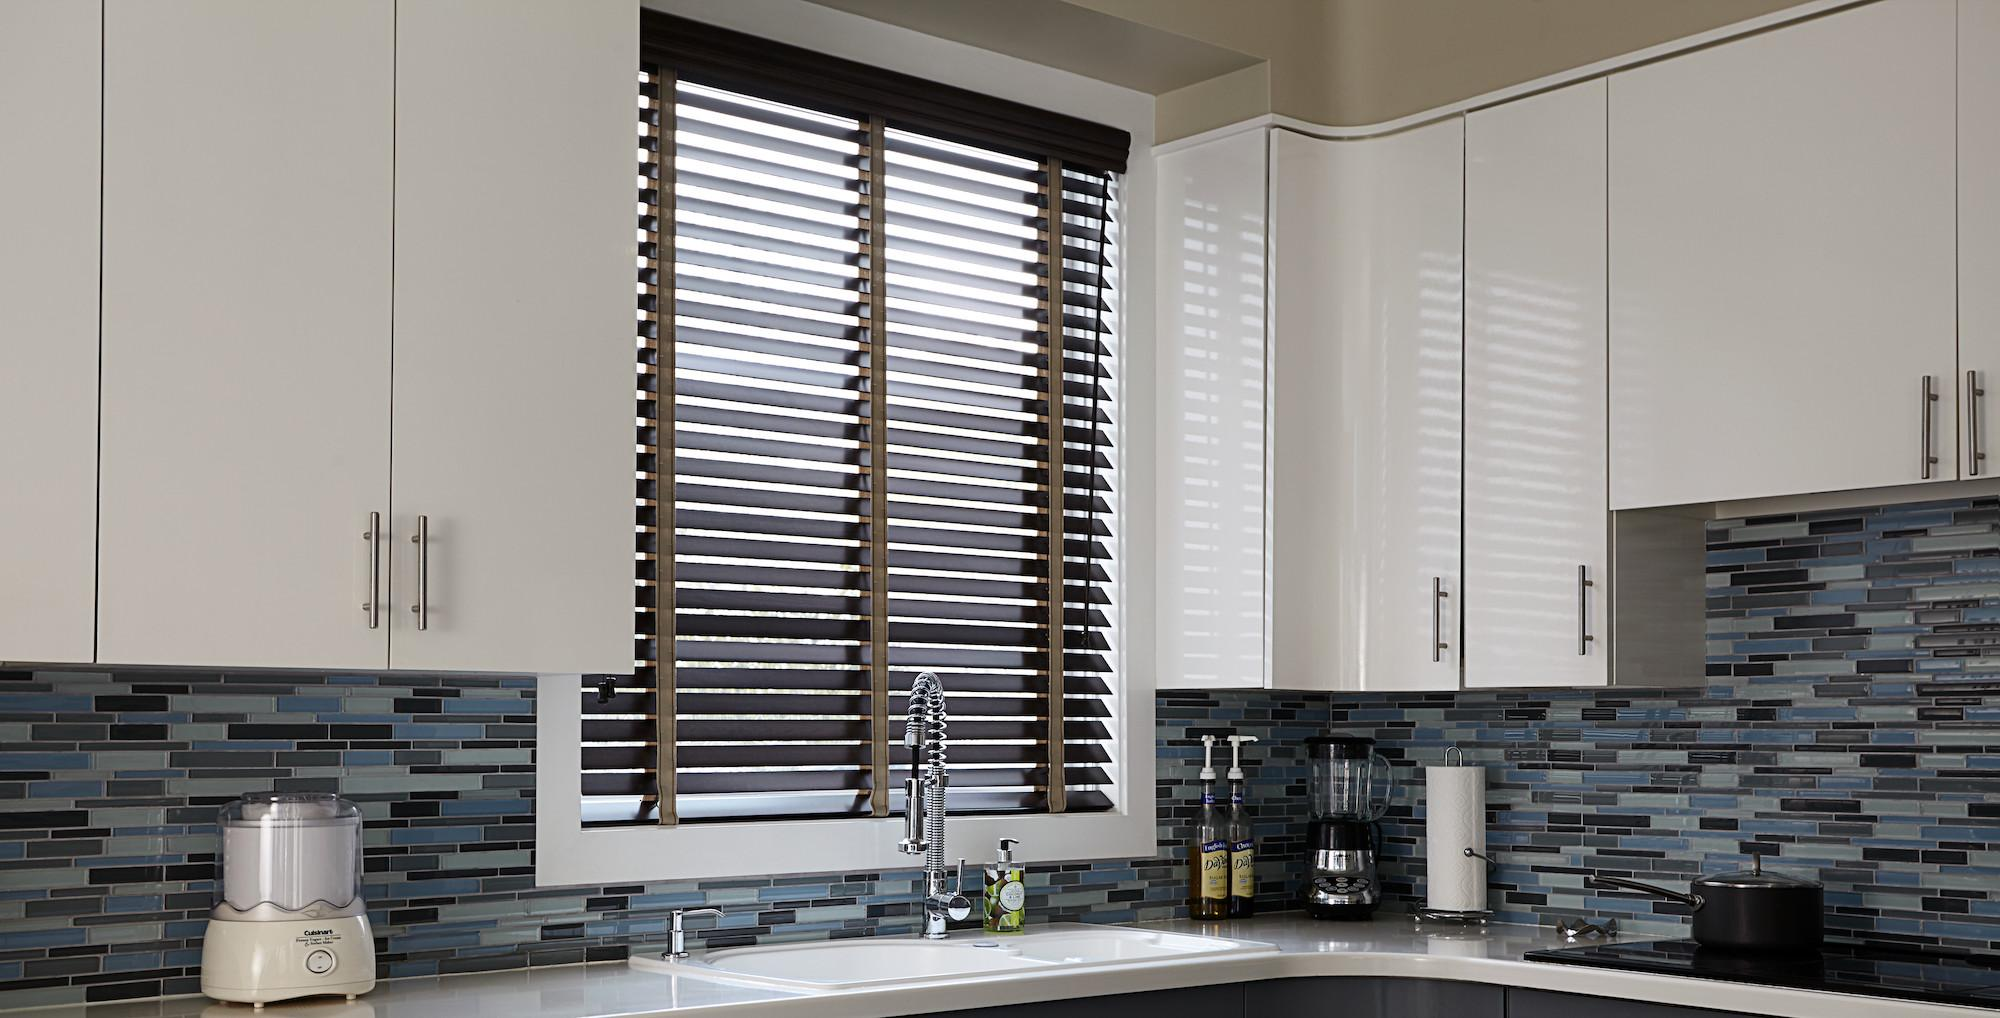 A kitchen window features real wood blinds in a dark brown finish with contrasting tan fabric tape